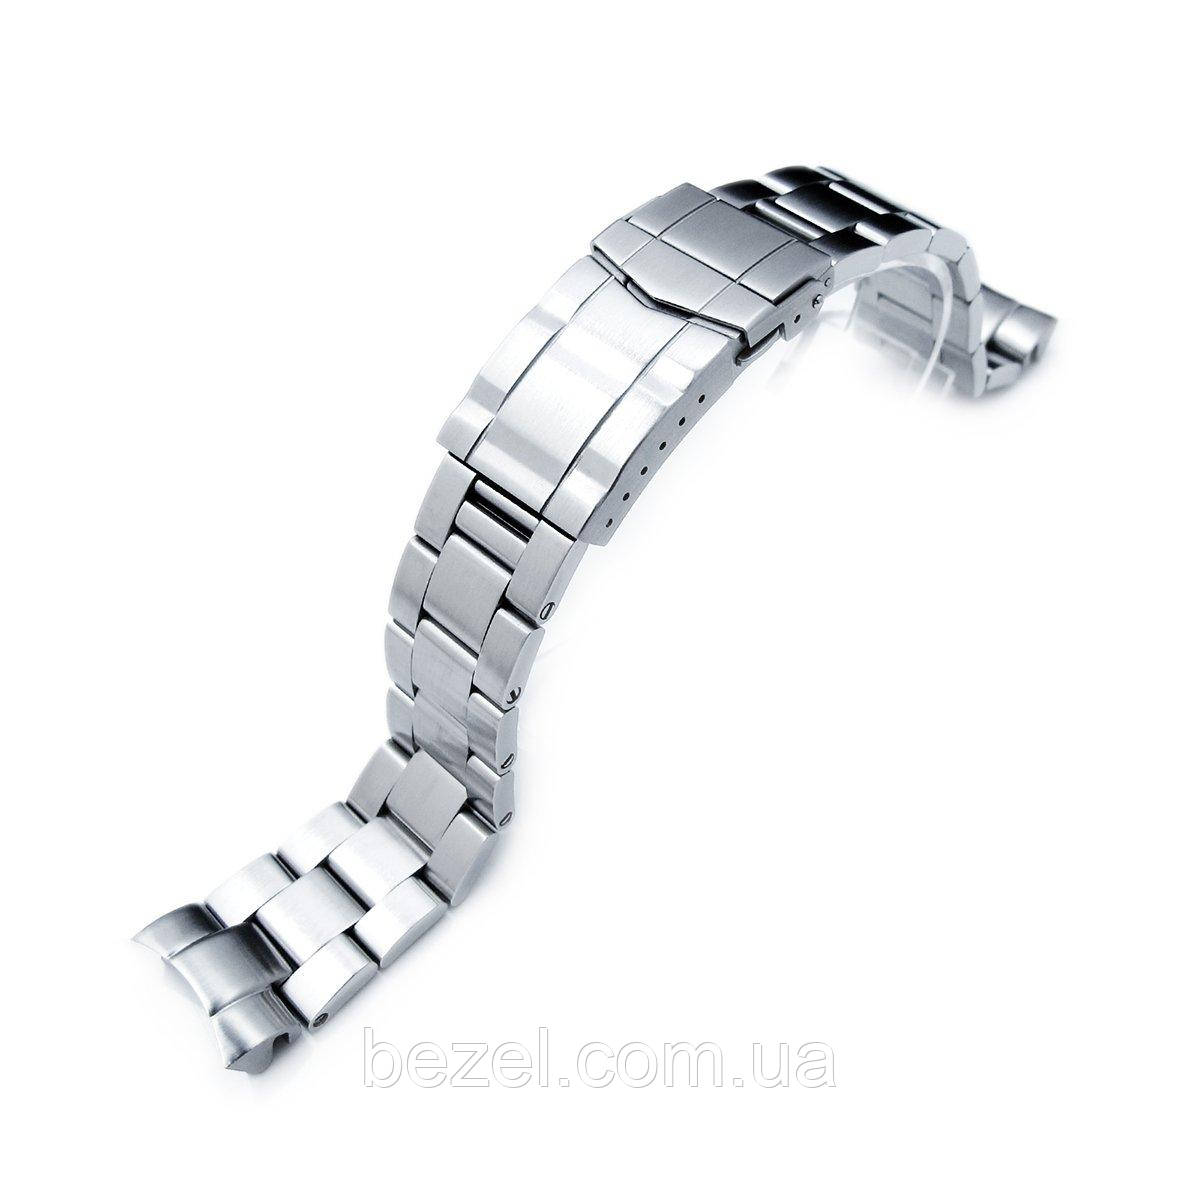 20mm Super Oyster Watch Bracelet for SEIKO Mid-size Diver SKX023, Solid Submariner Clasp, Brushed